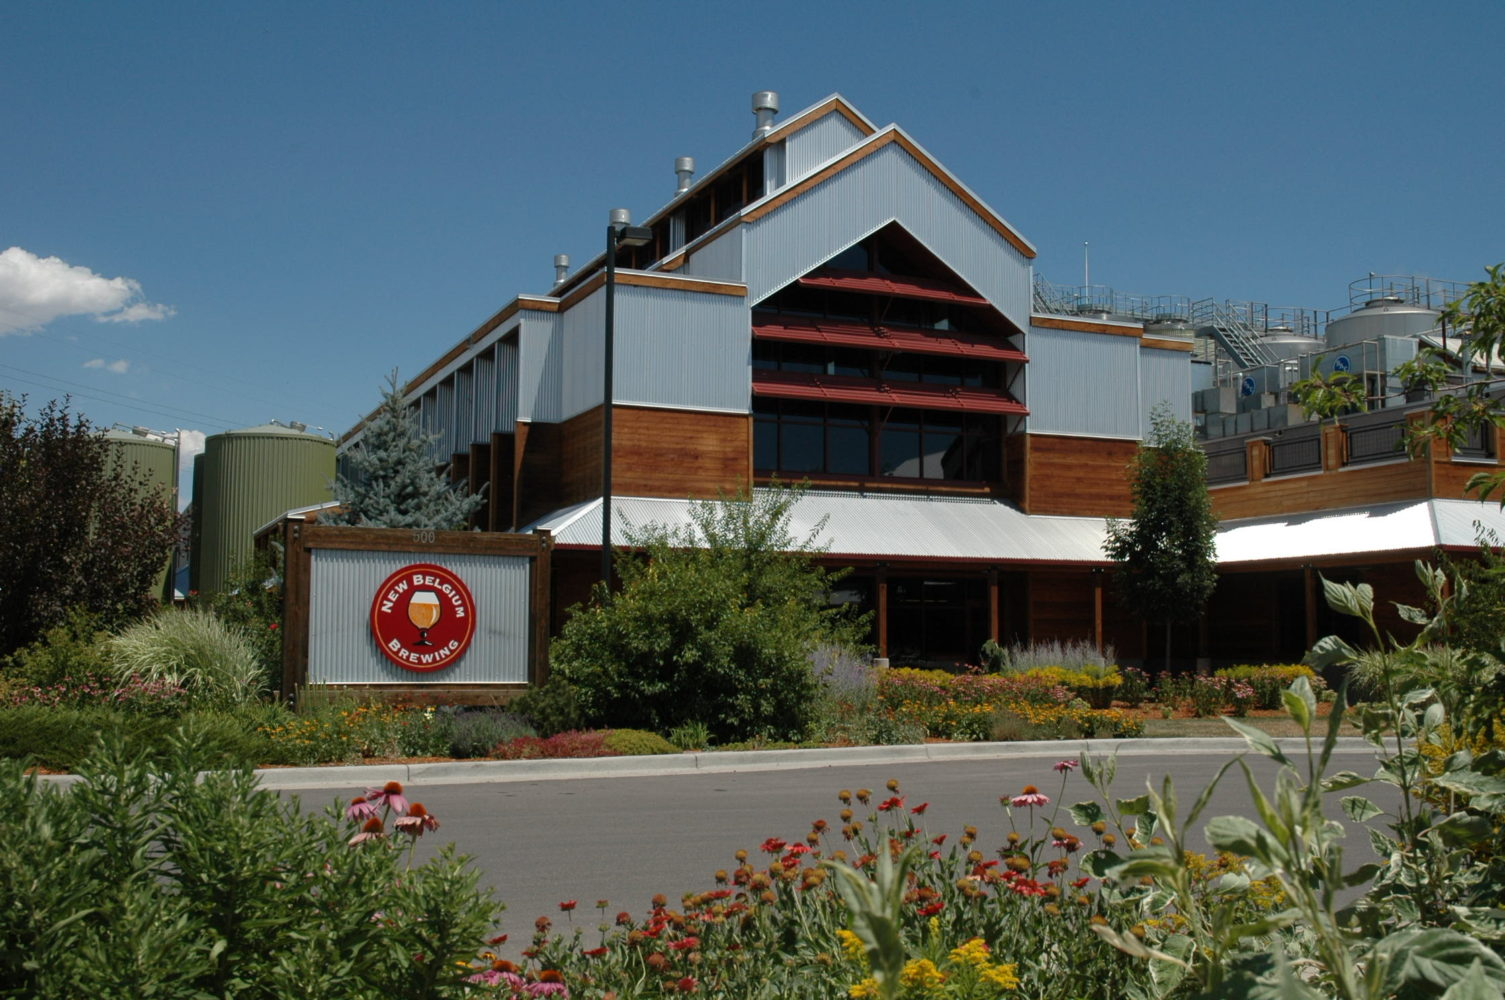 New Belgium Brewhouse Expansion